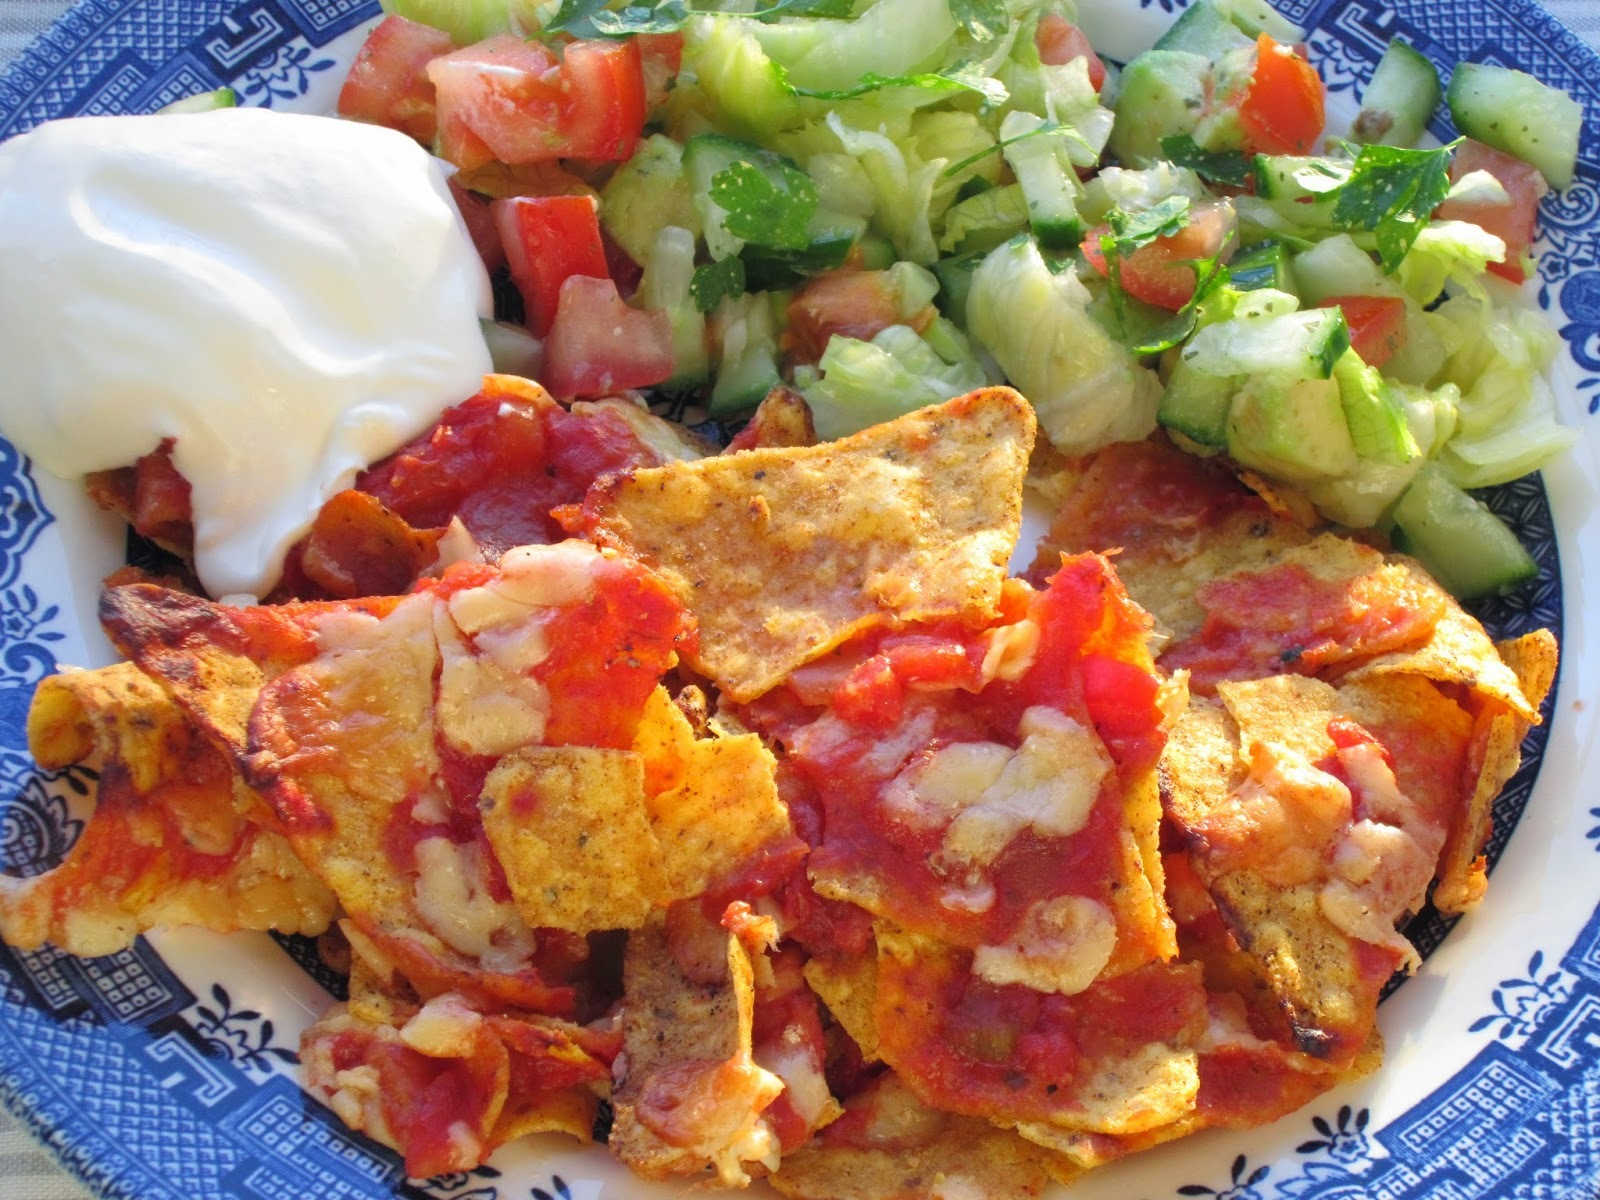 Vegetarian nachos and salsa salad - recipe